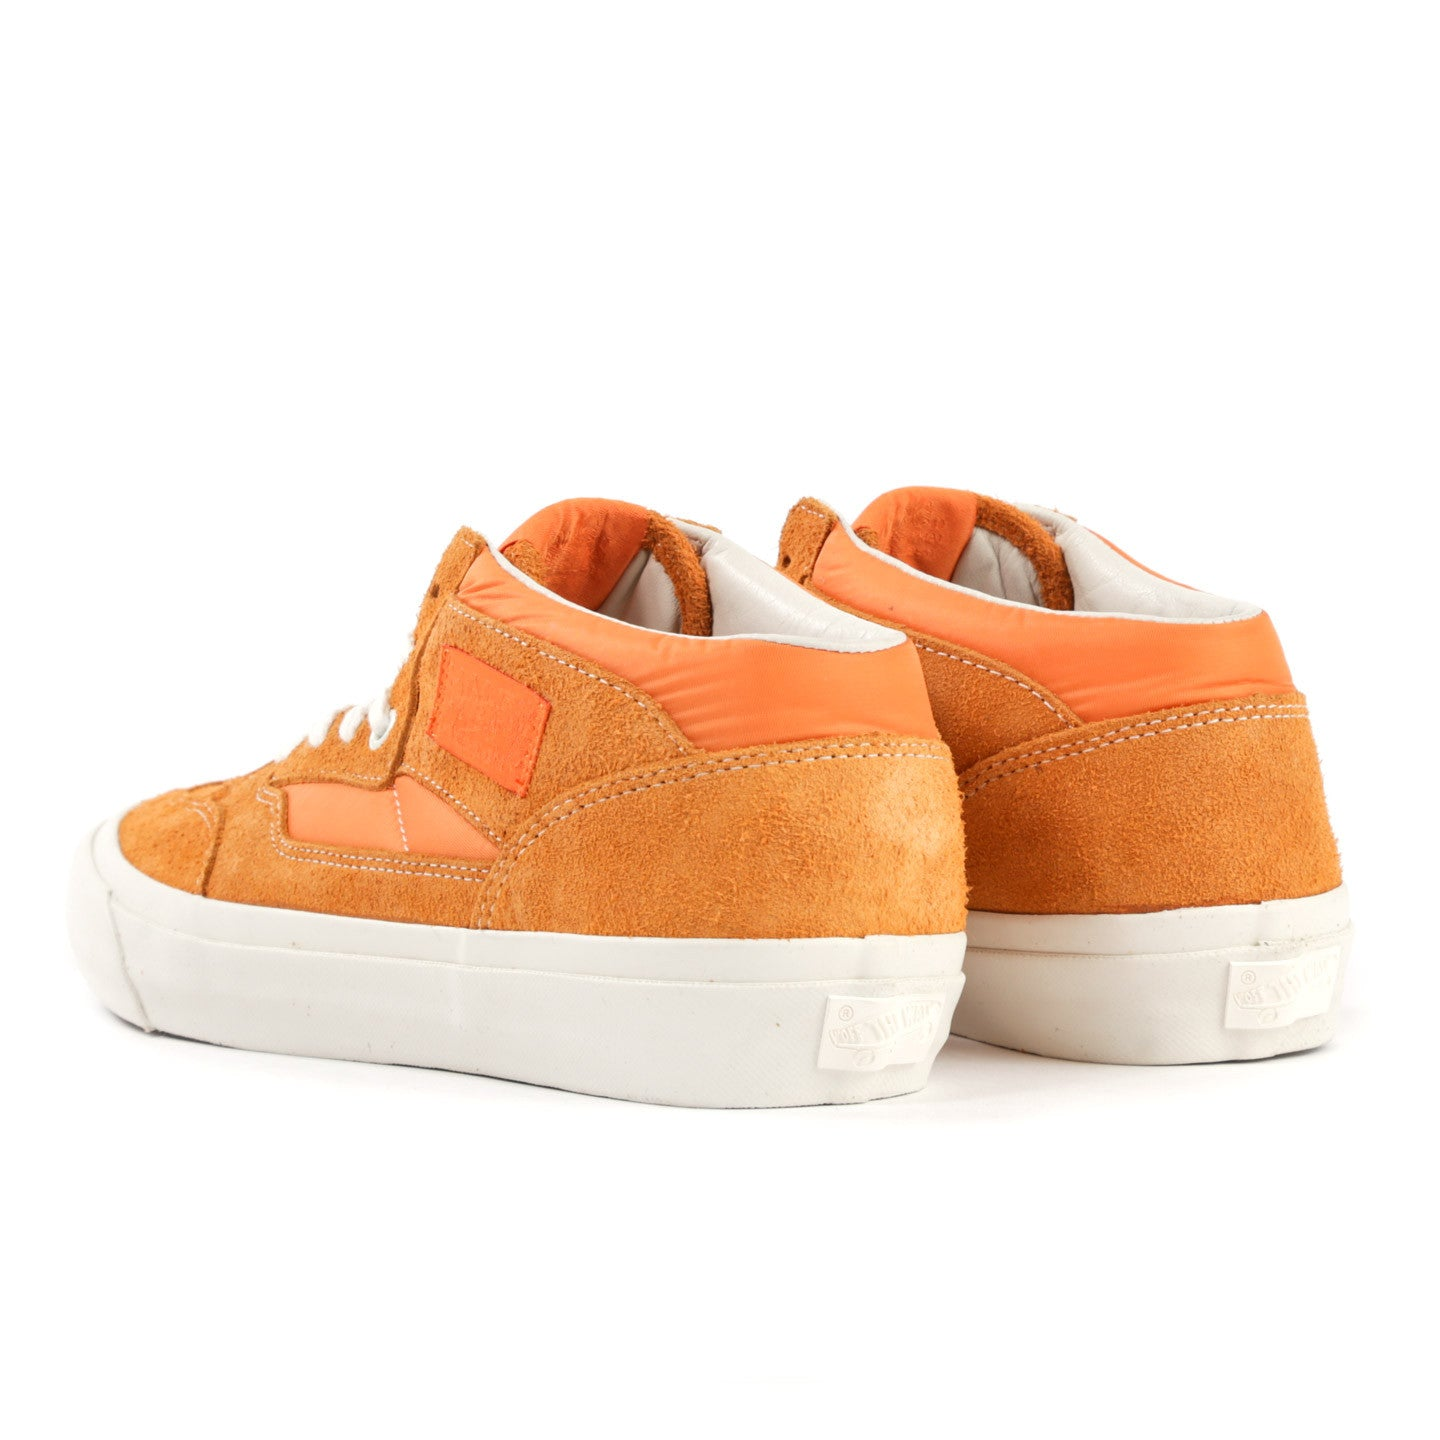 VAULT BY VANS OUR LEGACY HALF CAB PRO '92 LX OC ORANGE